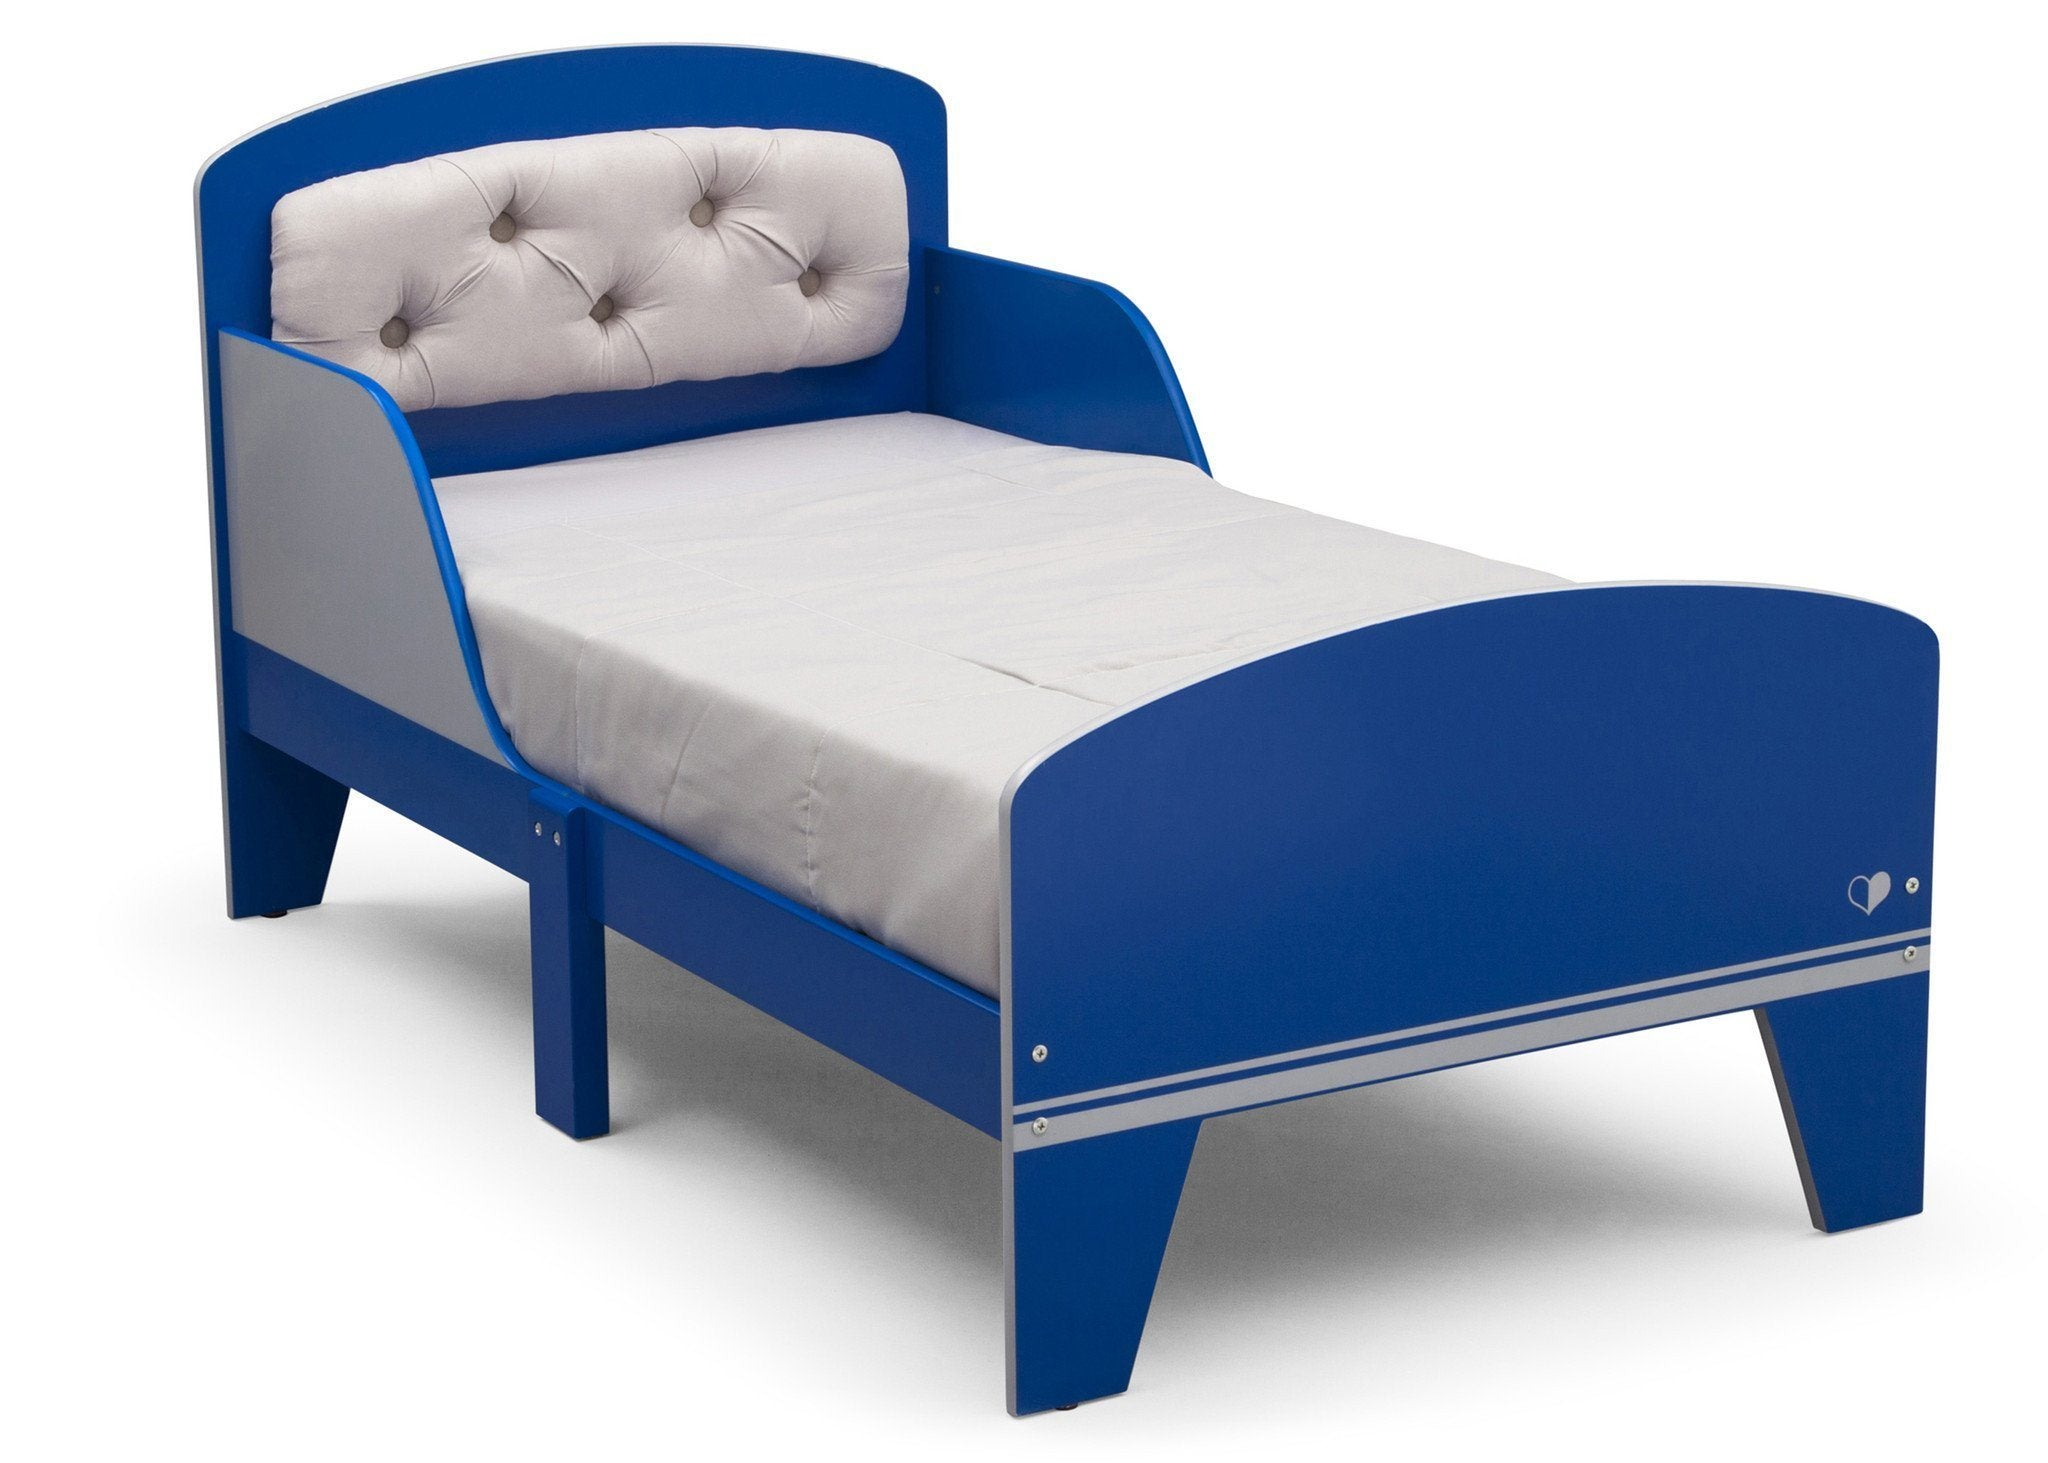 Delta Children Blue And Grey Jack and Jill Toddler Bed with Upholstered Headboard Style 1, Right View a2a